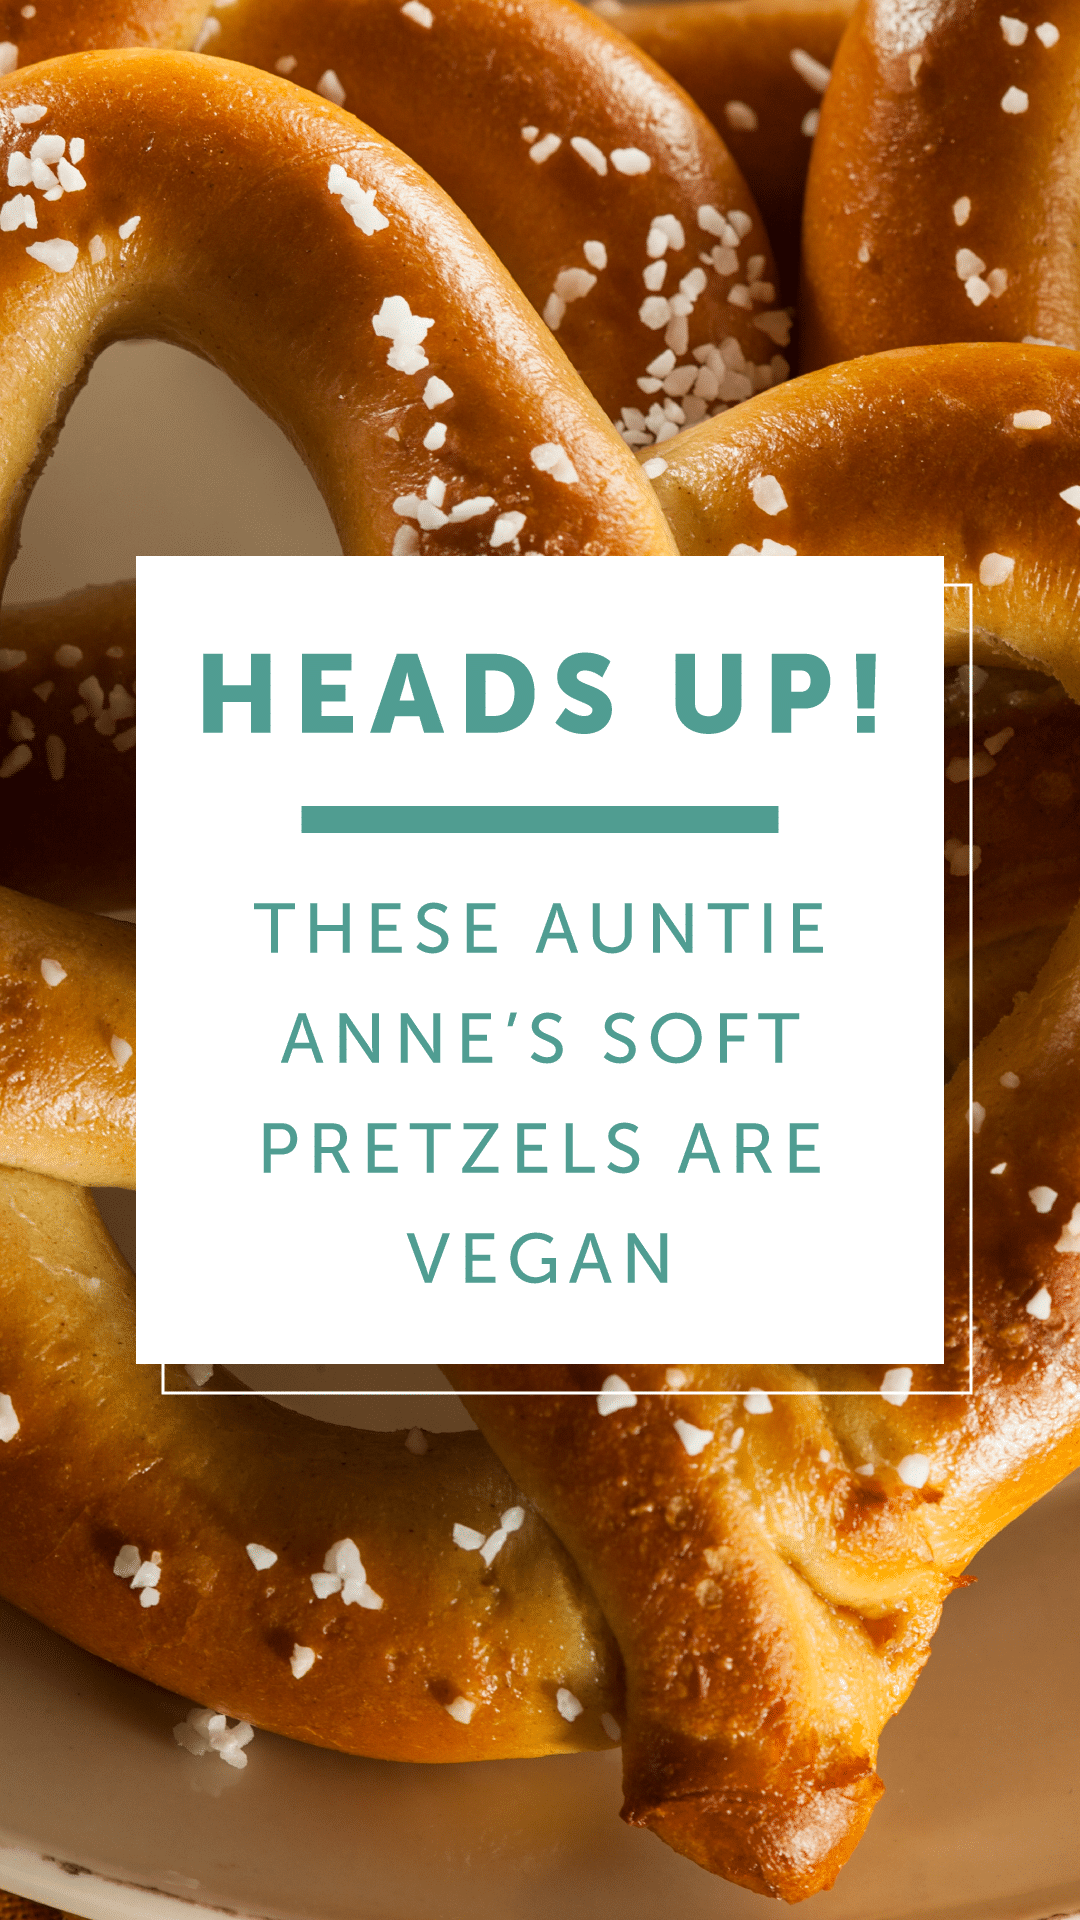 Heads Up! These Auntie Anne's Soft Pretzels Are Vegan